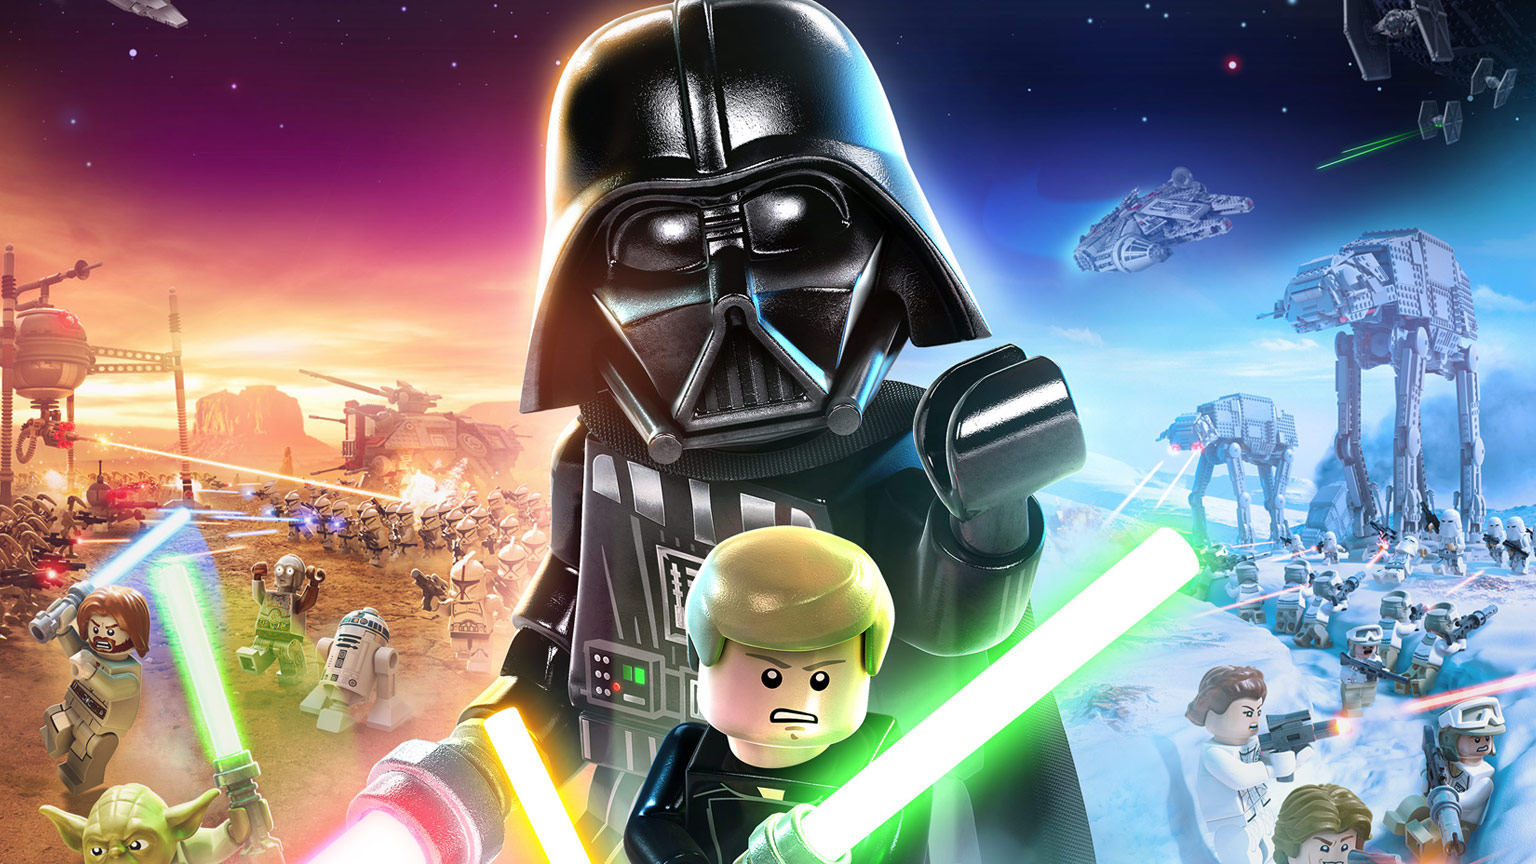 cover art showing the Lego-styled rendering of various Star Wars movie posters, with a large Lego Darth Vader and Luke Skywalker at center